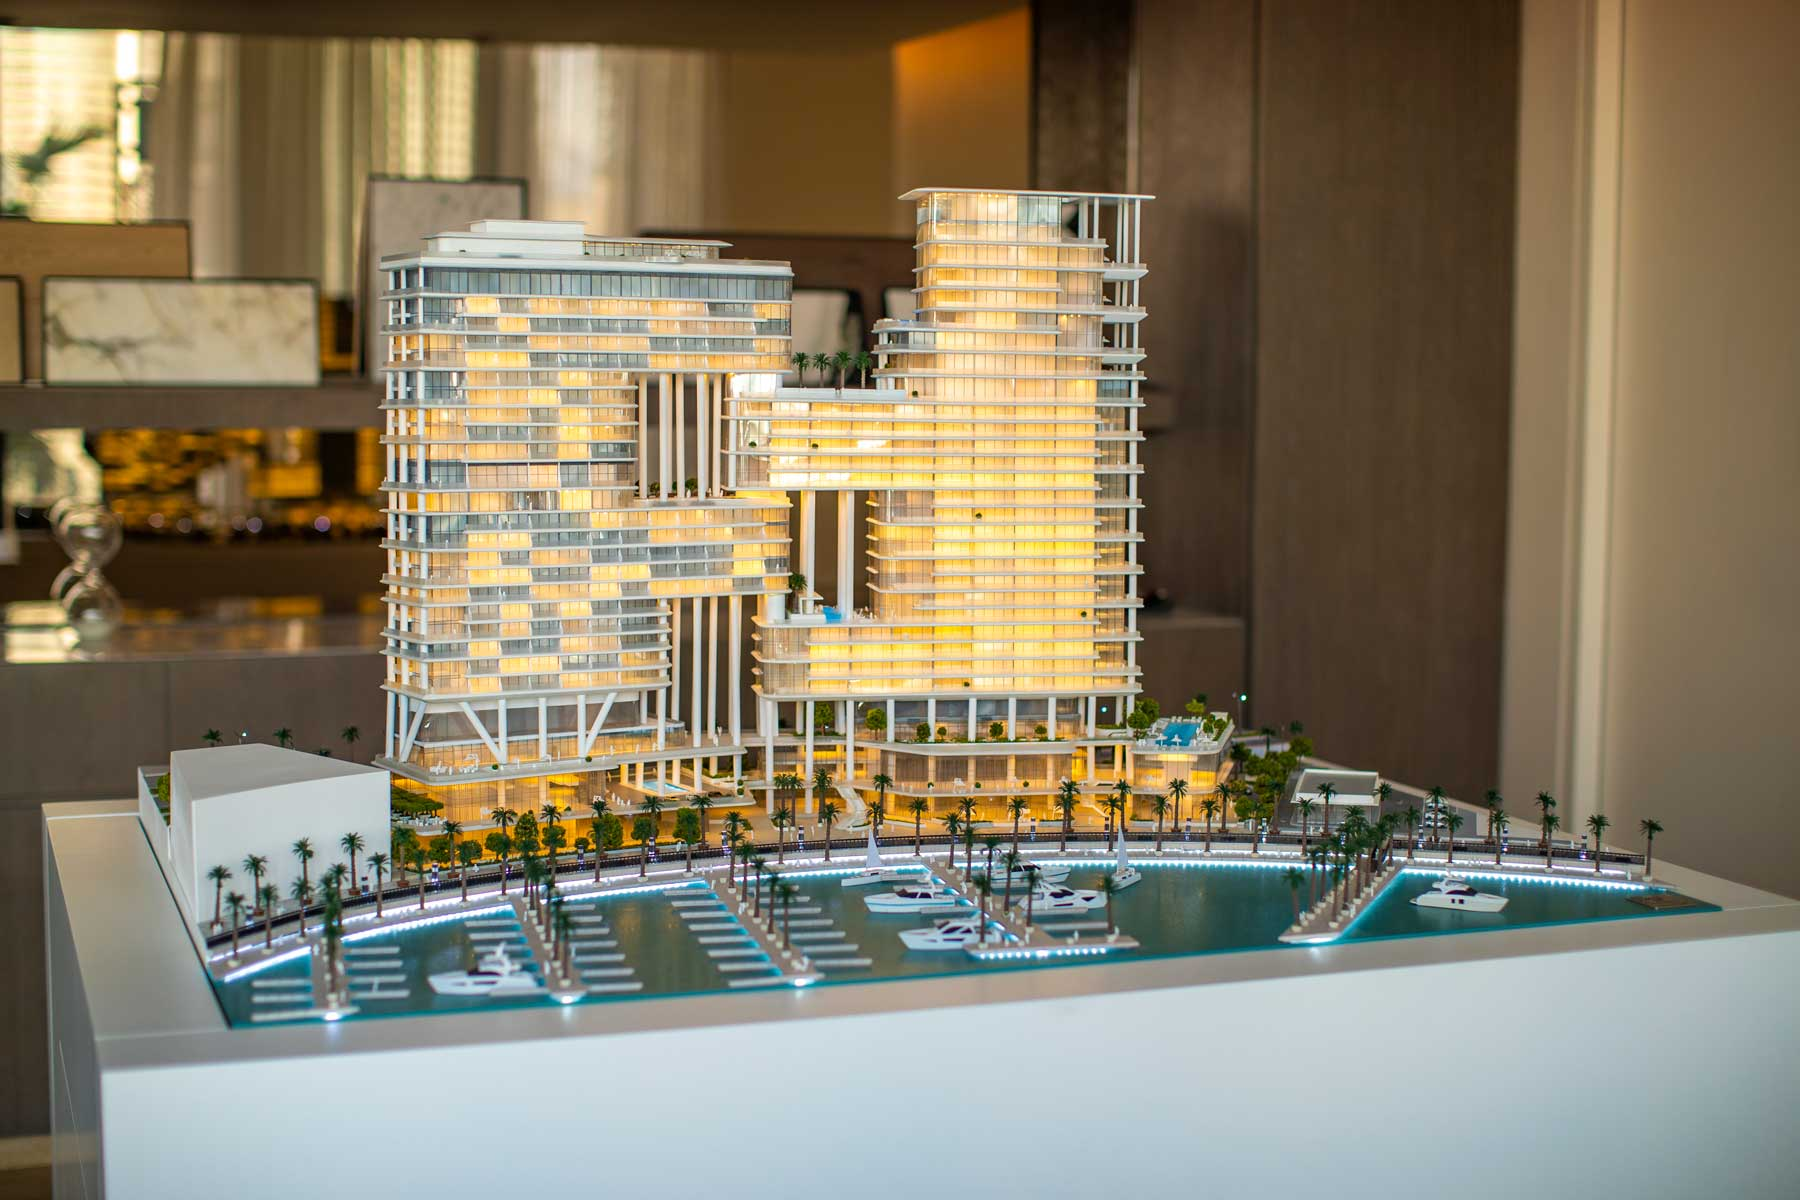 Presenting The Dorchester Collection Hotel & Residences